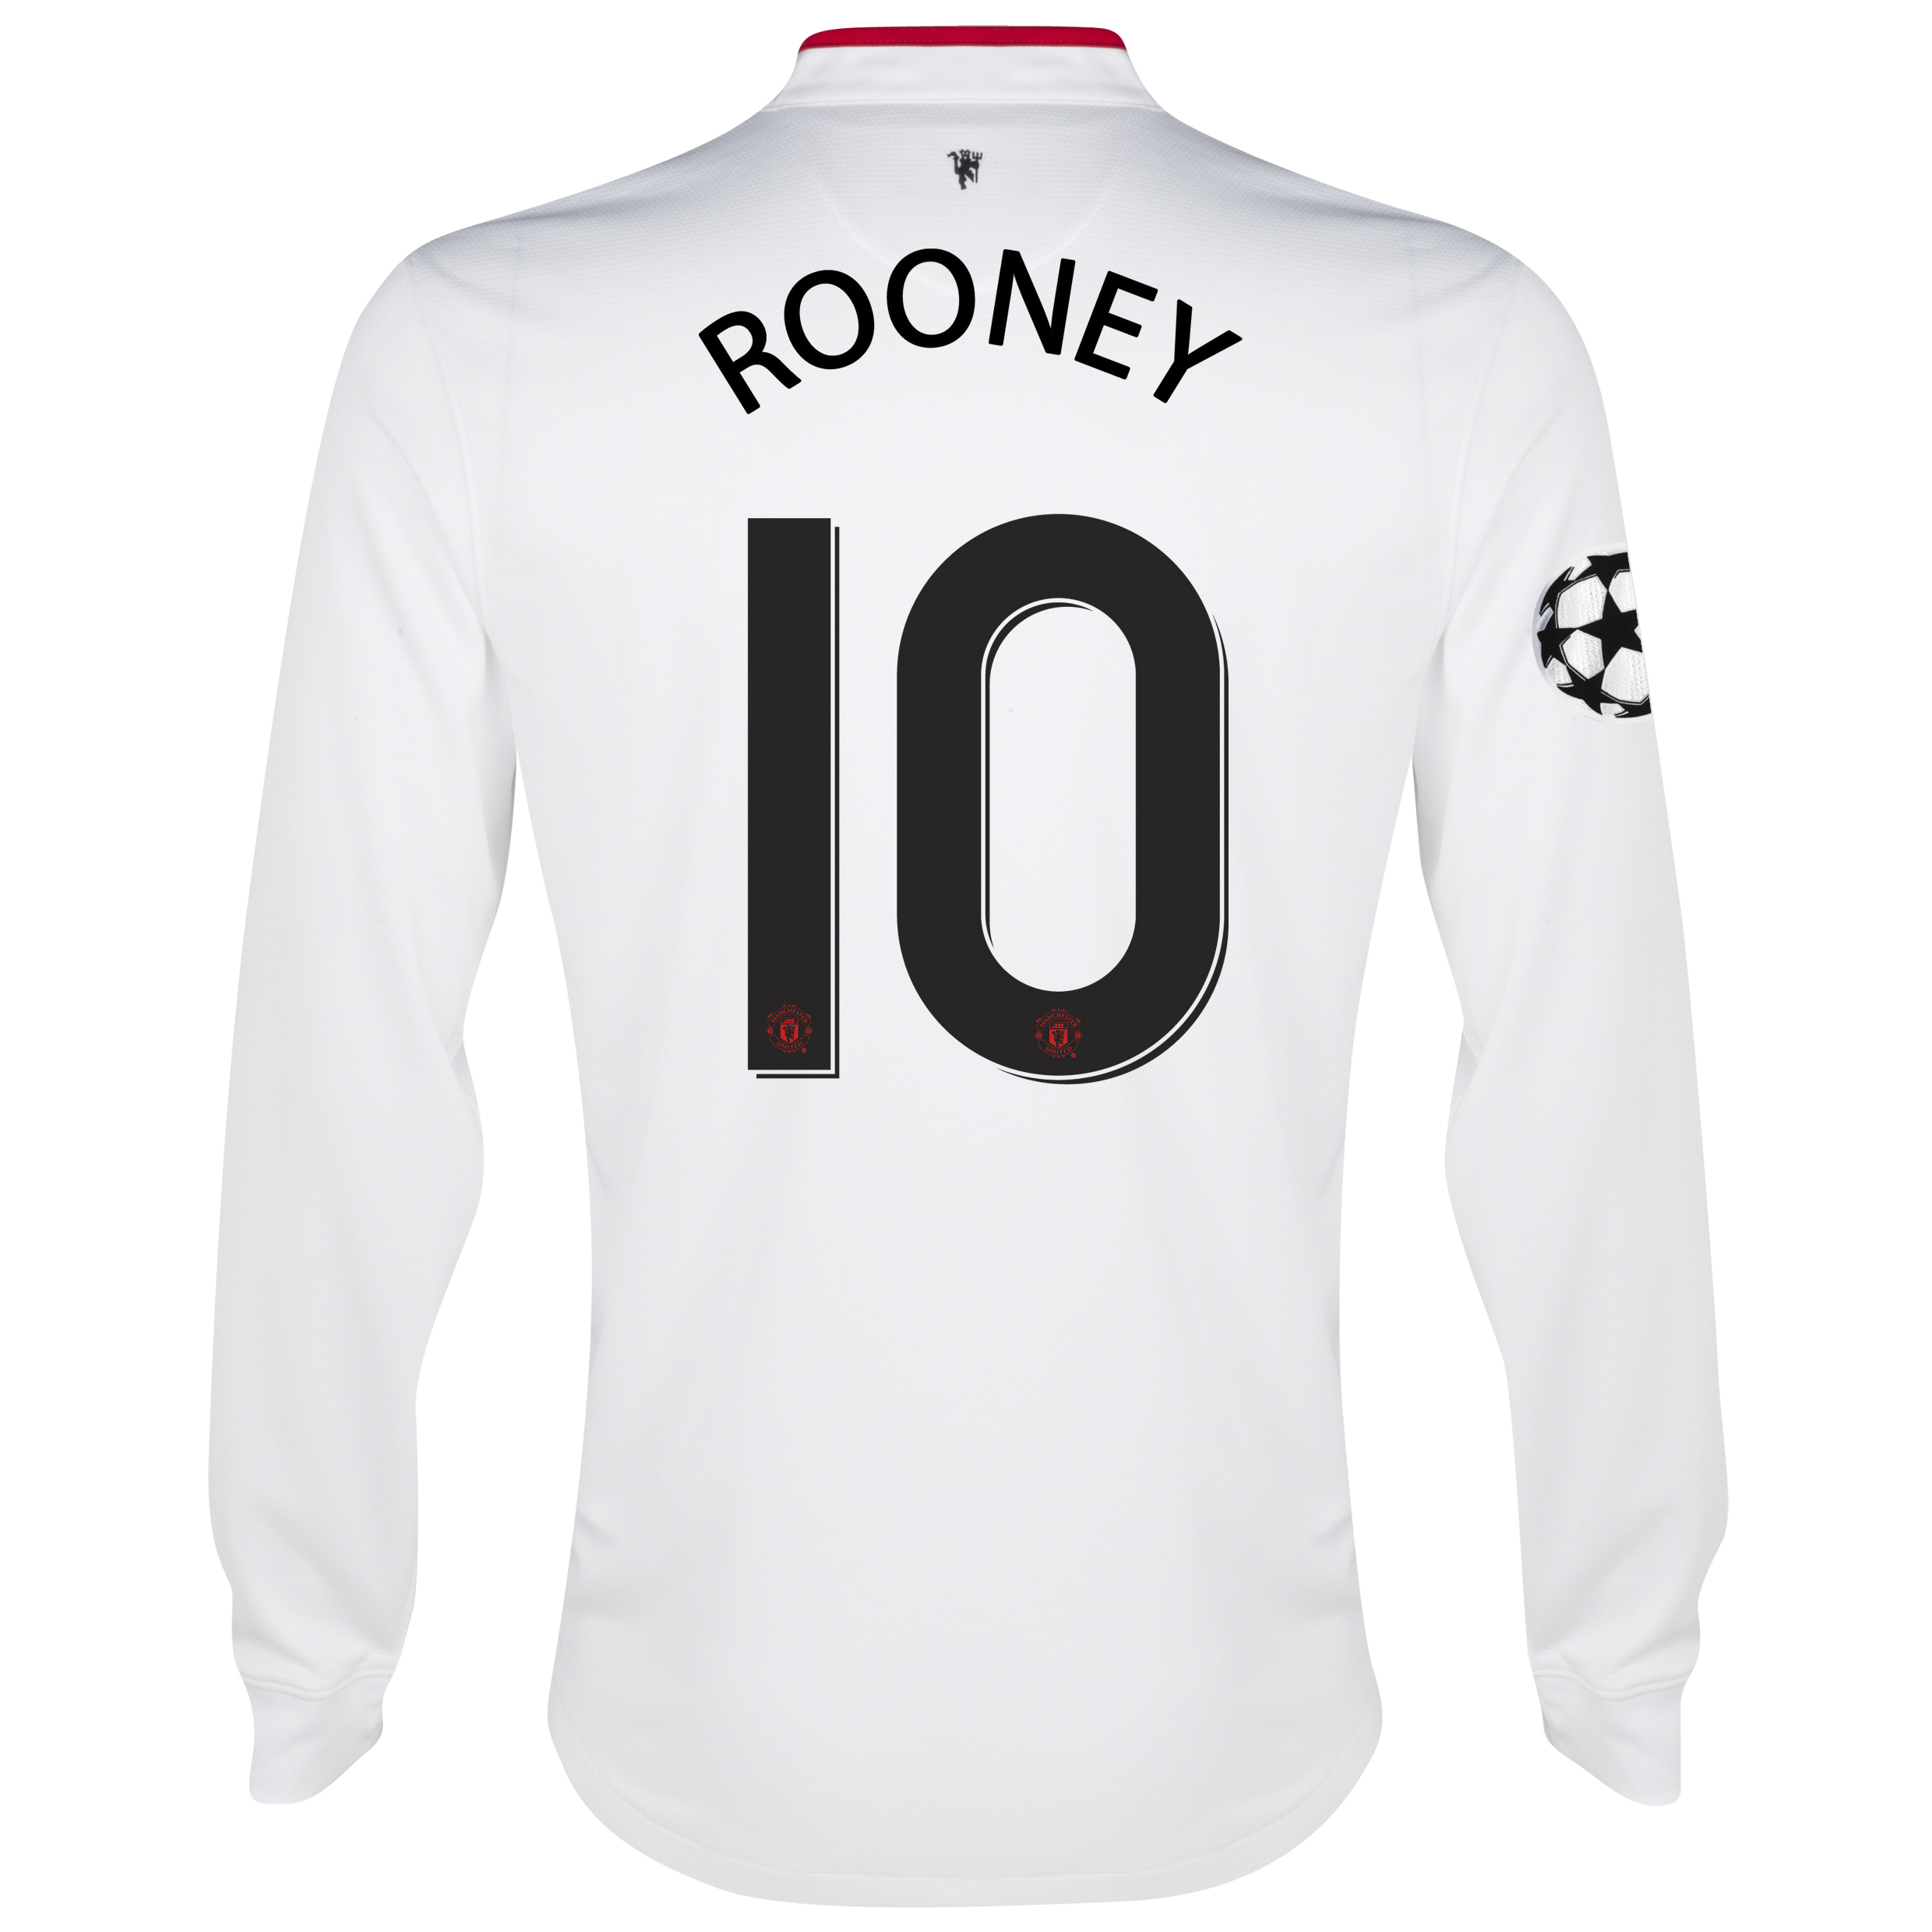 Manchester United UEFA Champions League Away Shirt 2012/13 - Long Sleeved - Kids with Rooney 10 printing